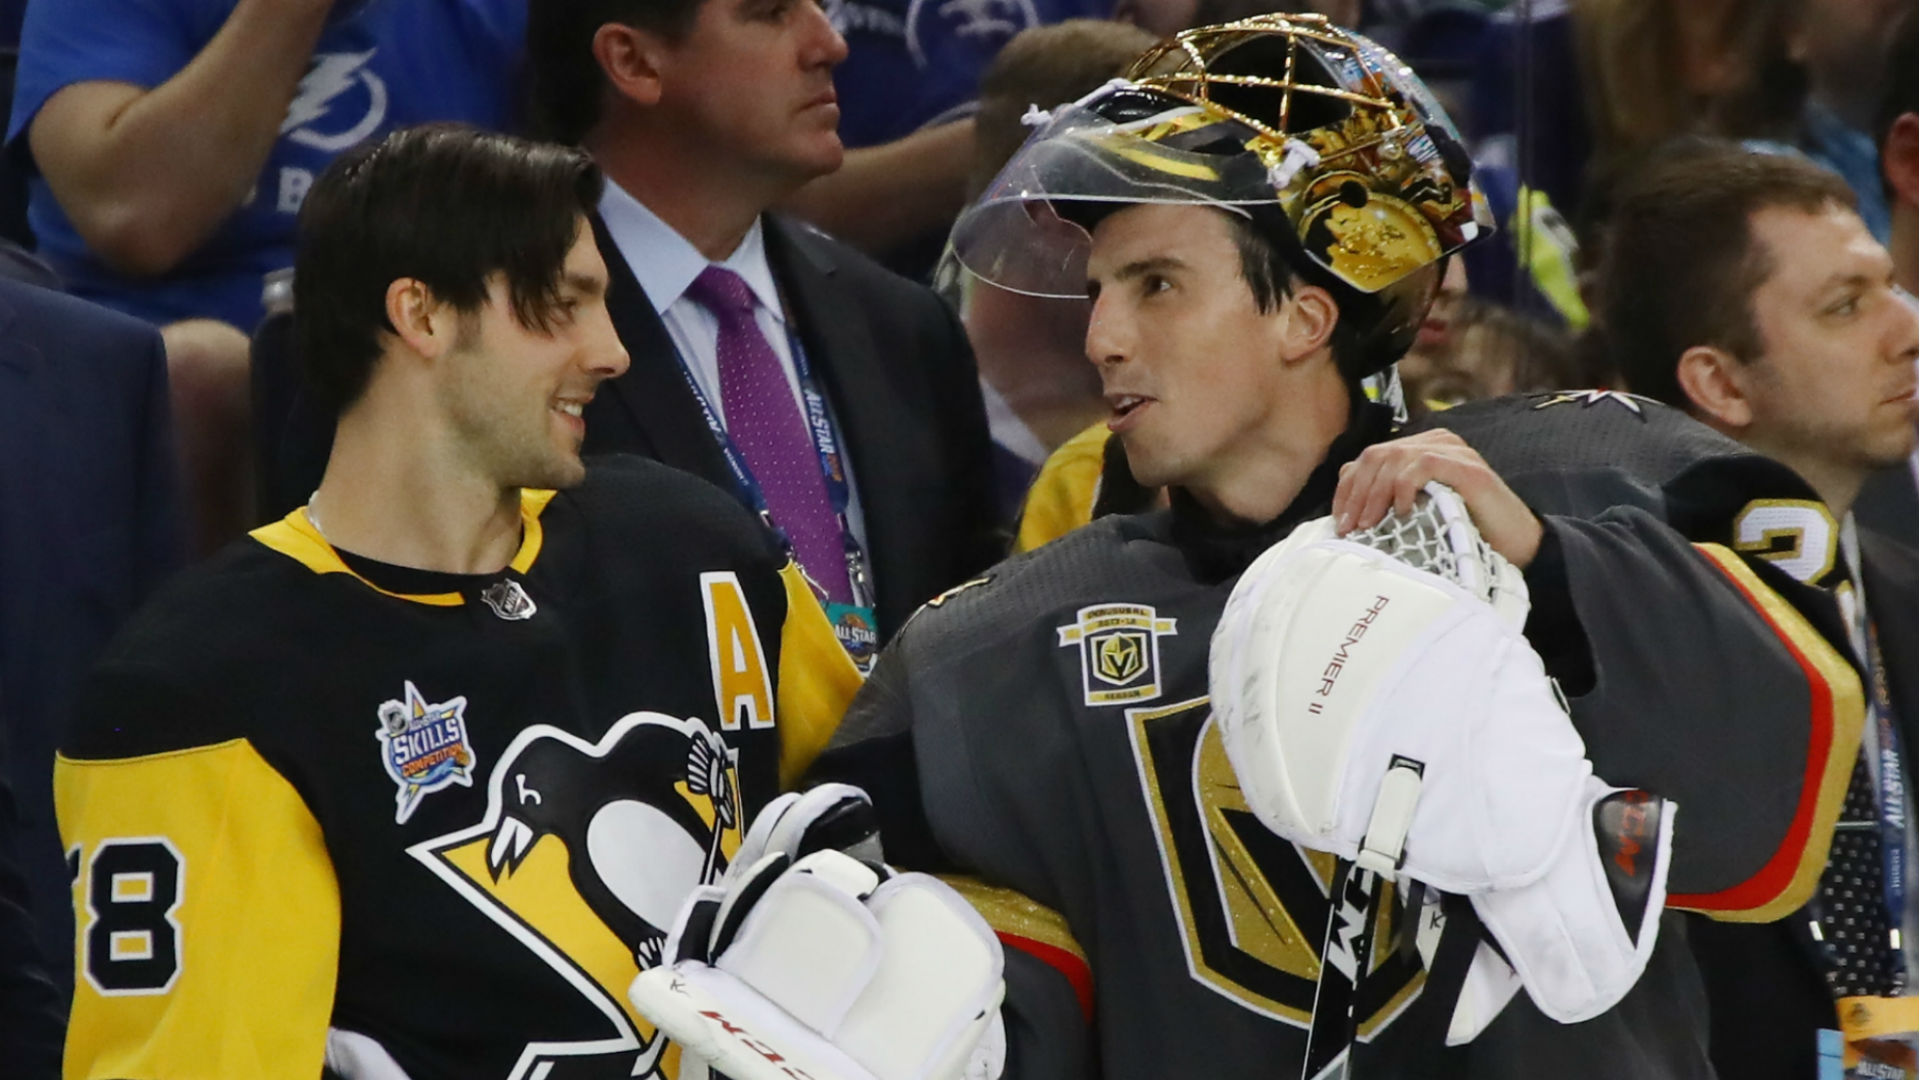 Flower power: Six facts as Marc-Andre Fleury makes Pittsburgh return